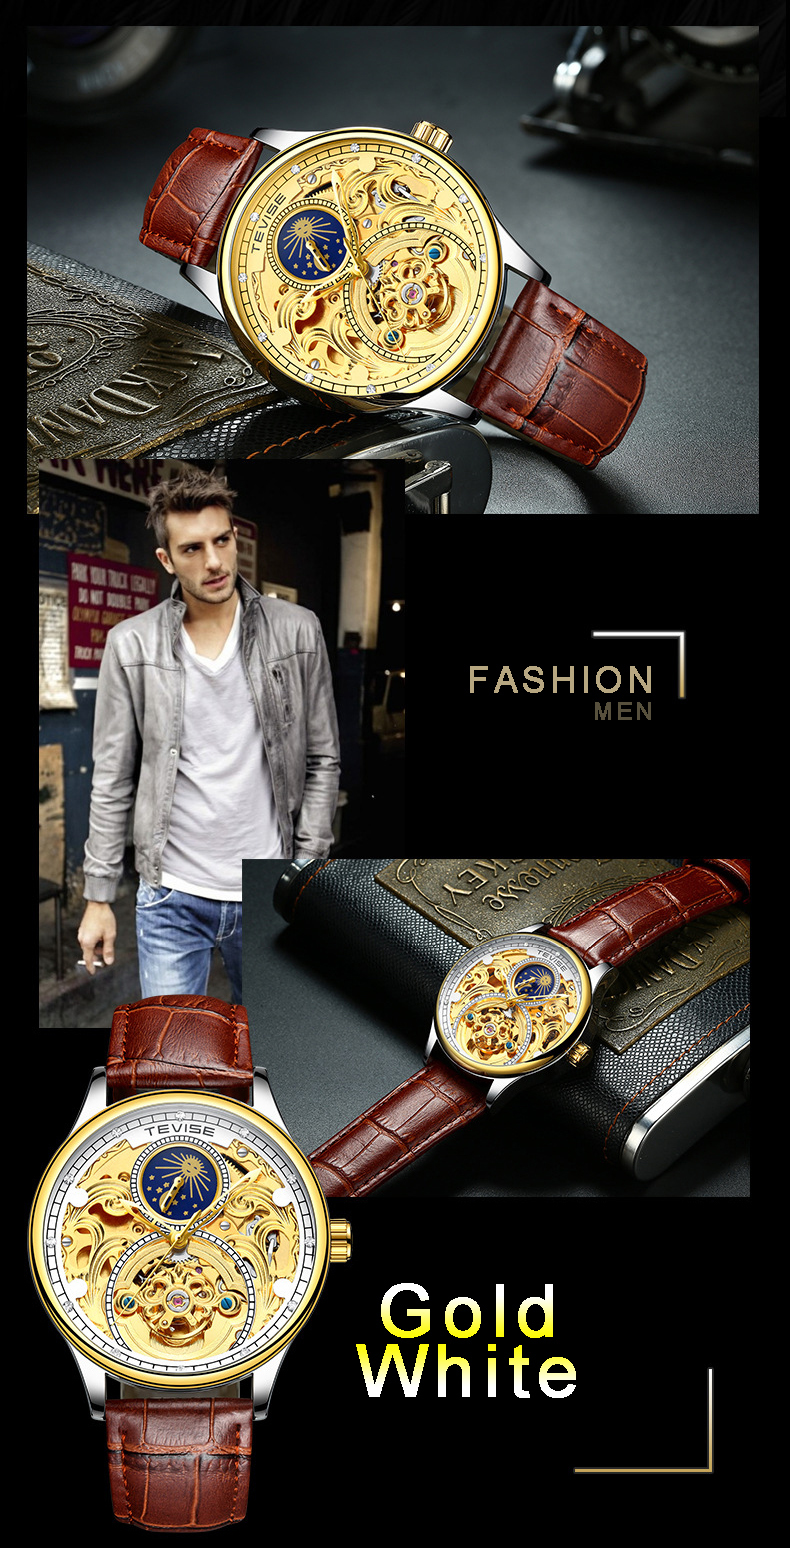 GOLD WATCH MEN 2